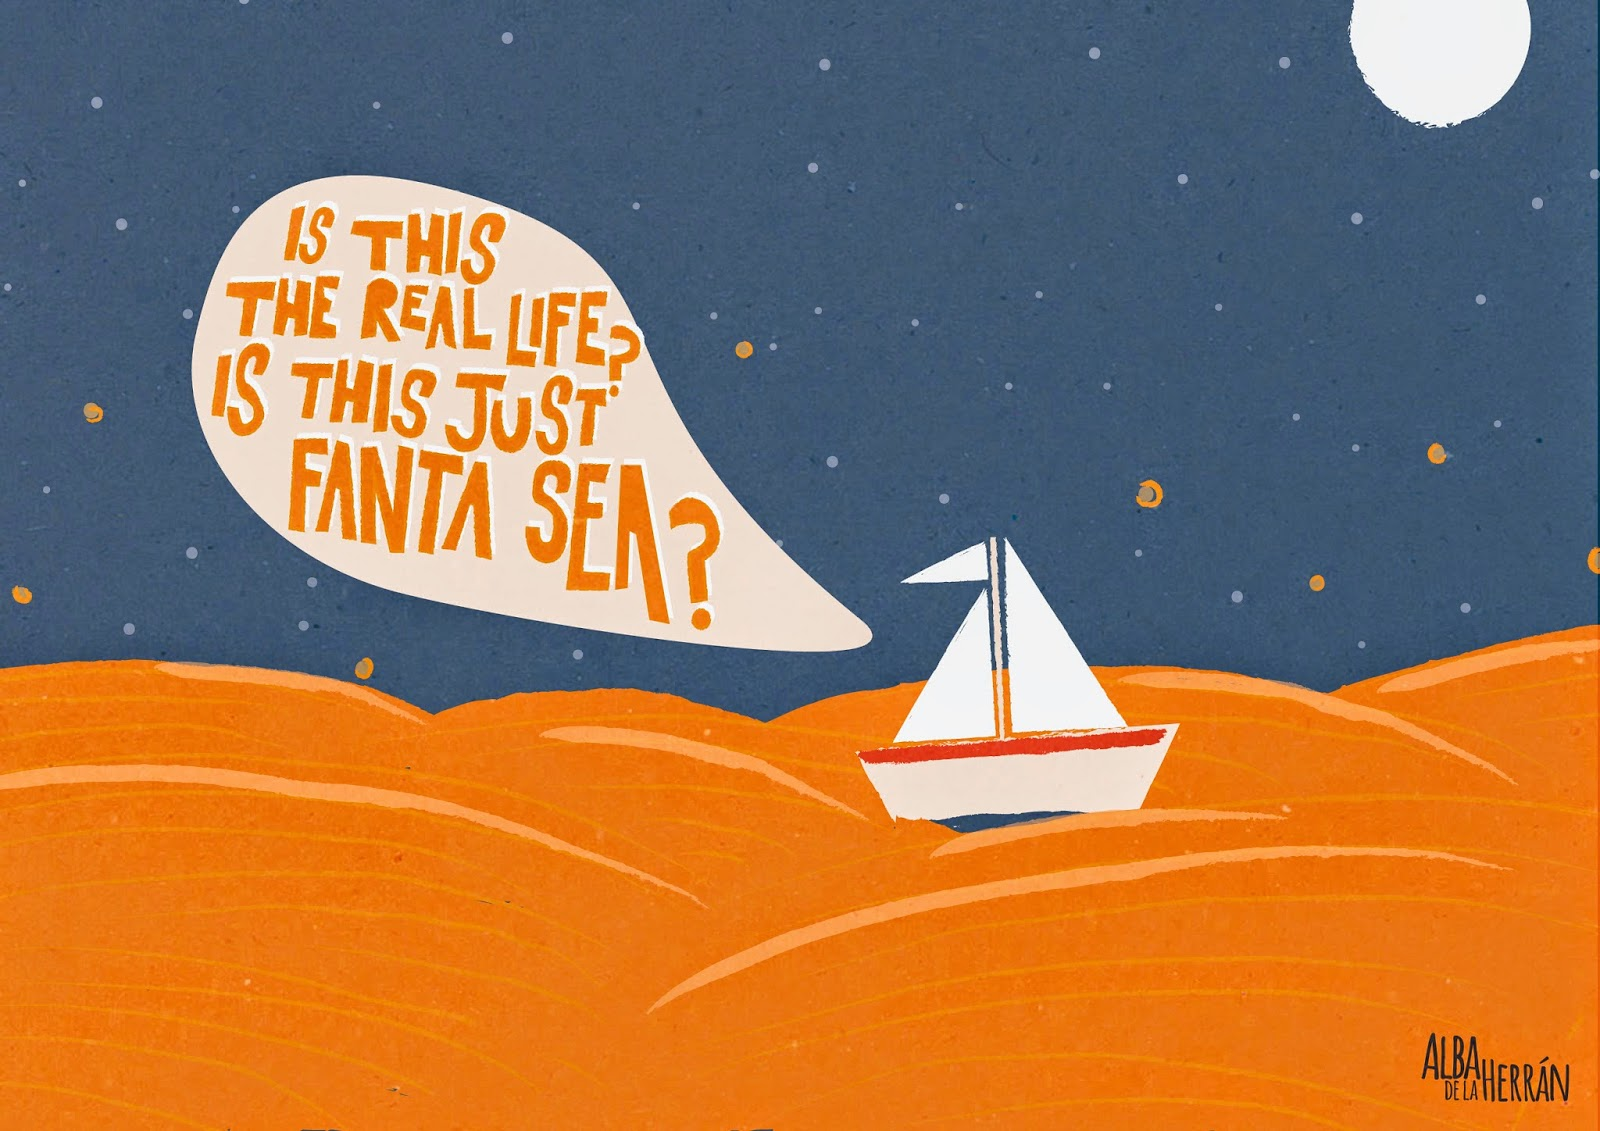 is this just fanta sea